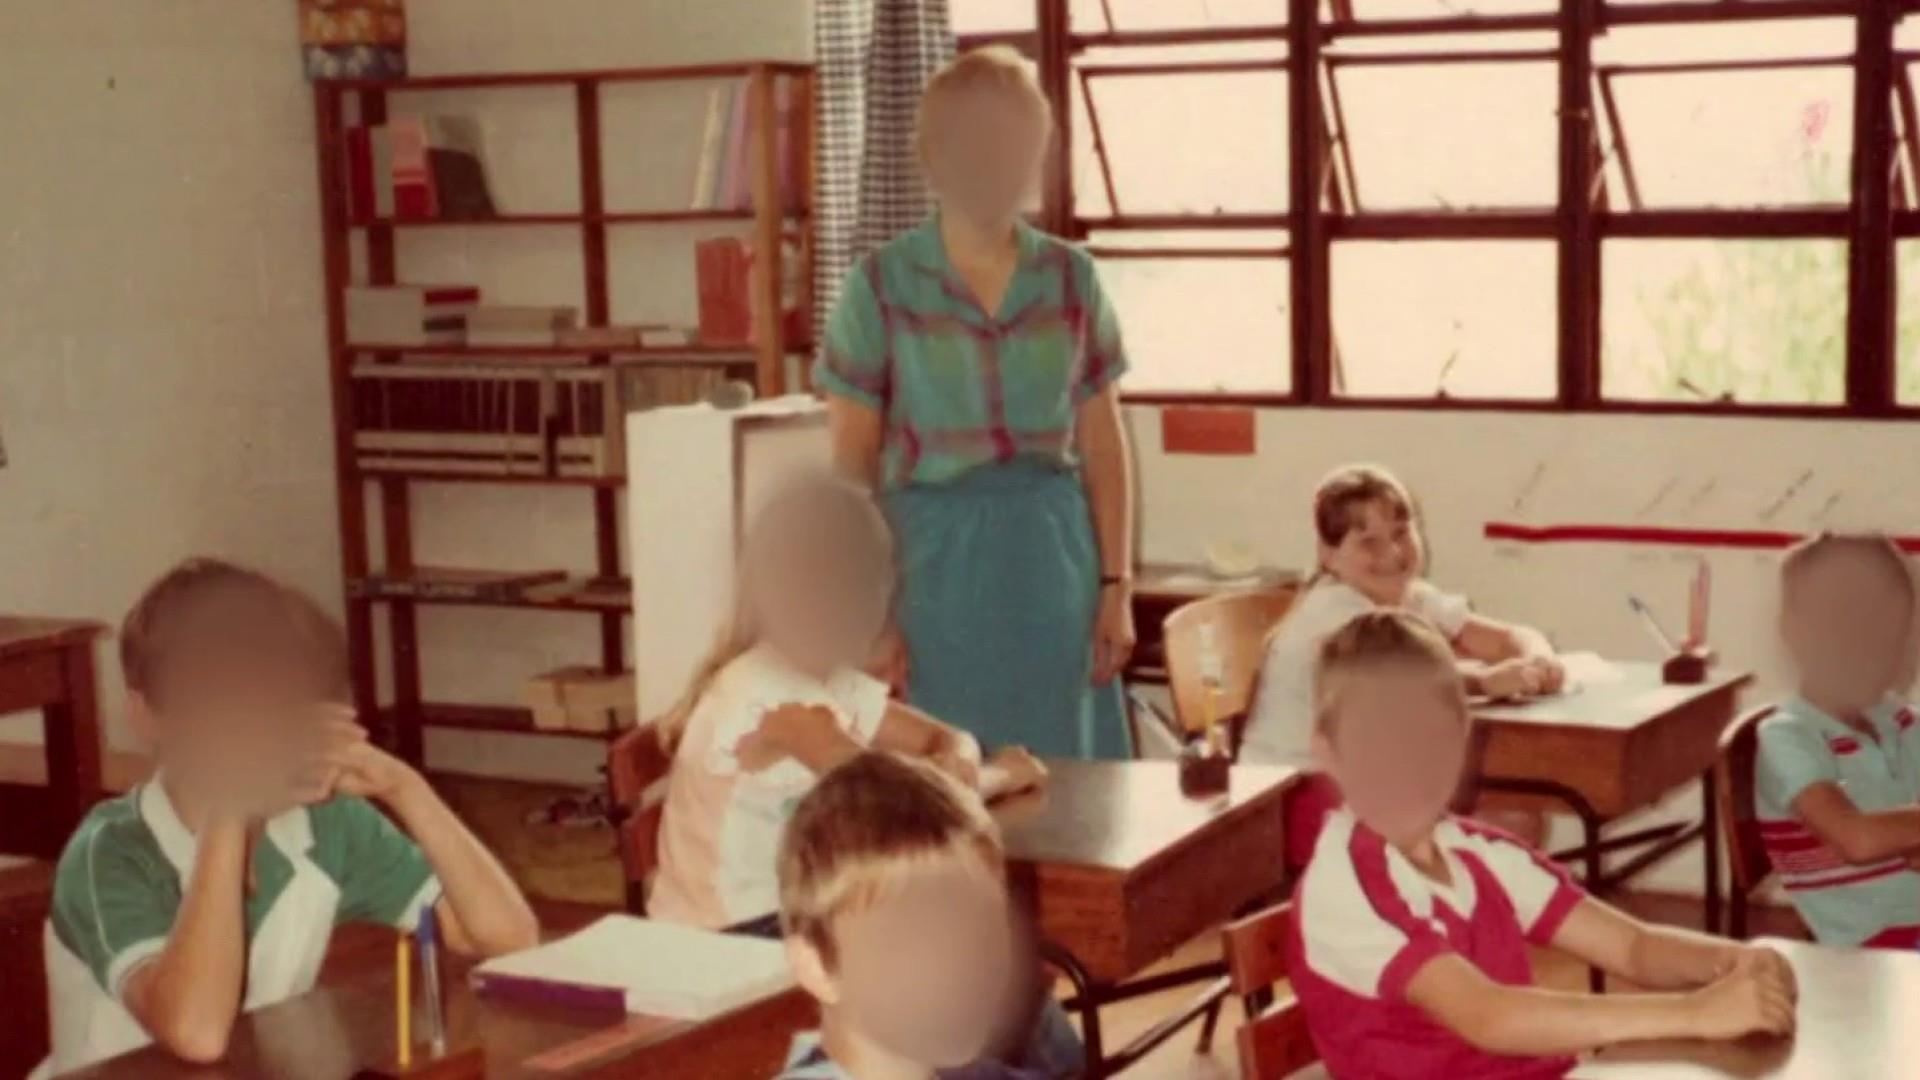 NBC News exclusive investigation: Children of missionaries share stories of sexual abuse